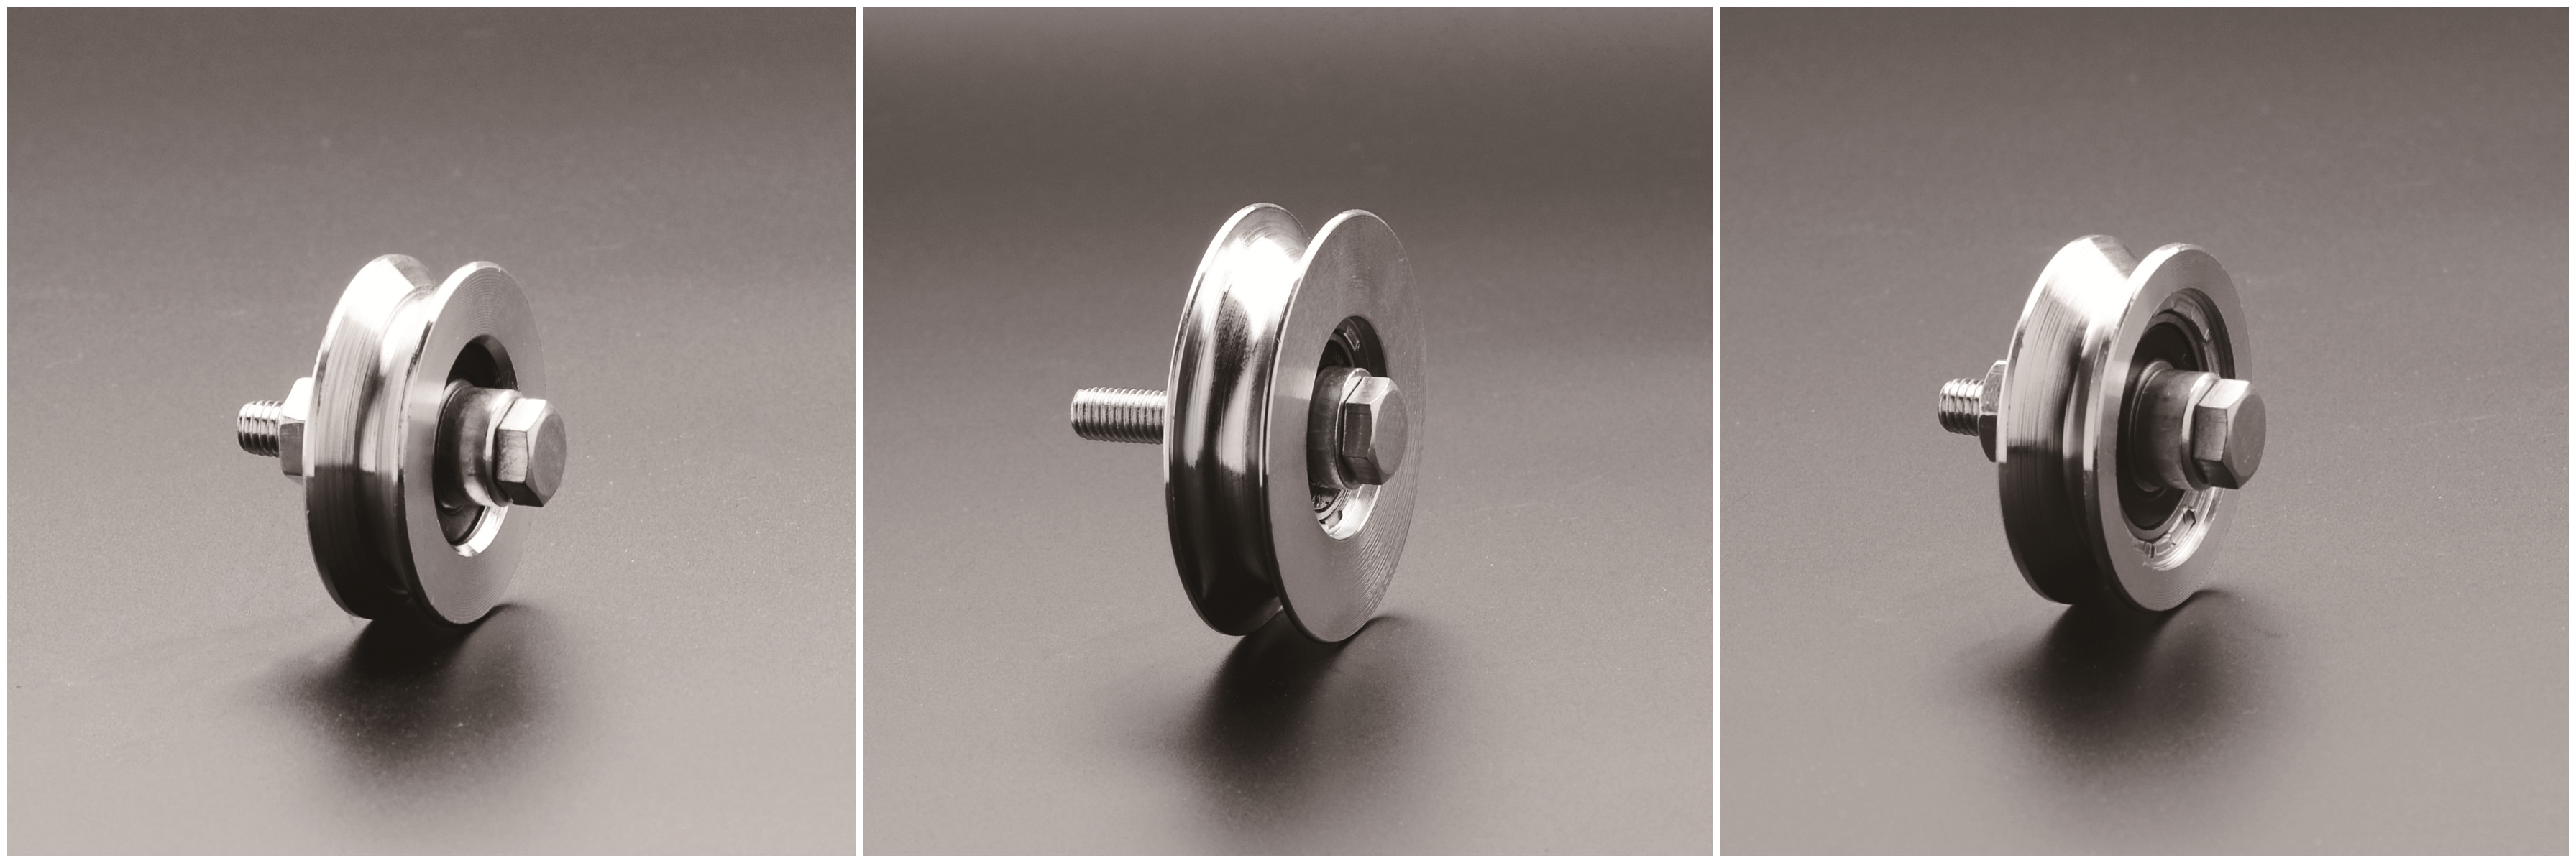 High sales rate in Jinnaike embedded rollers for shower cabins,sliding doors rollers wheels In stock